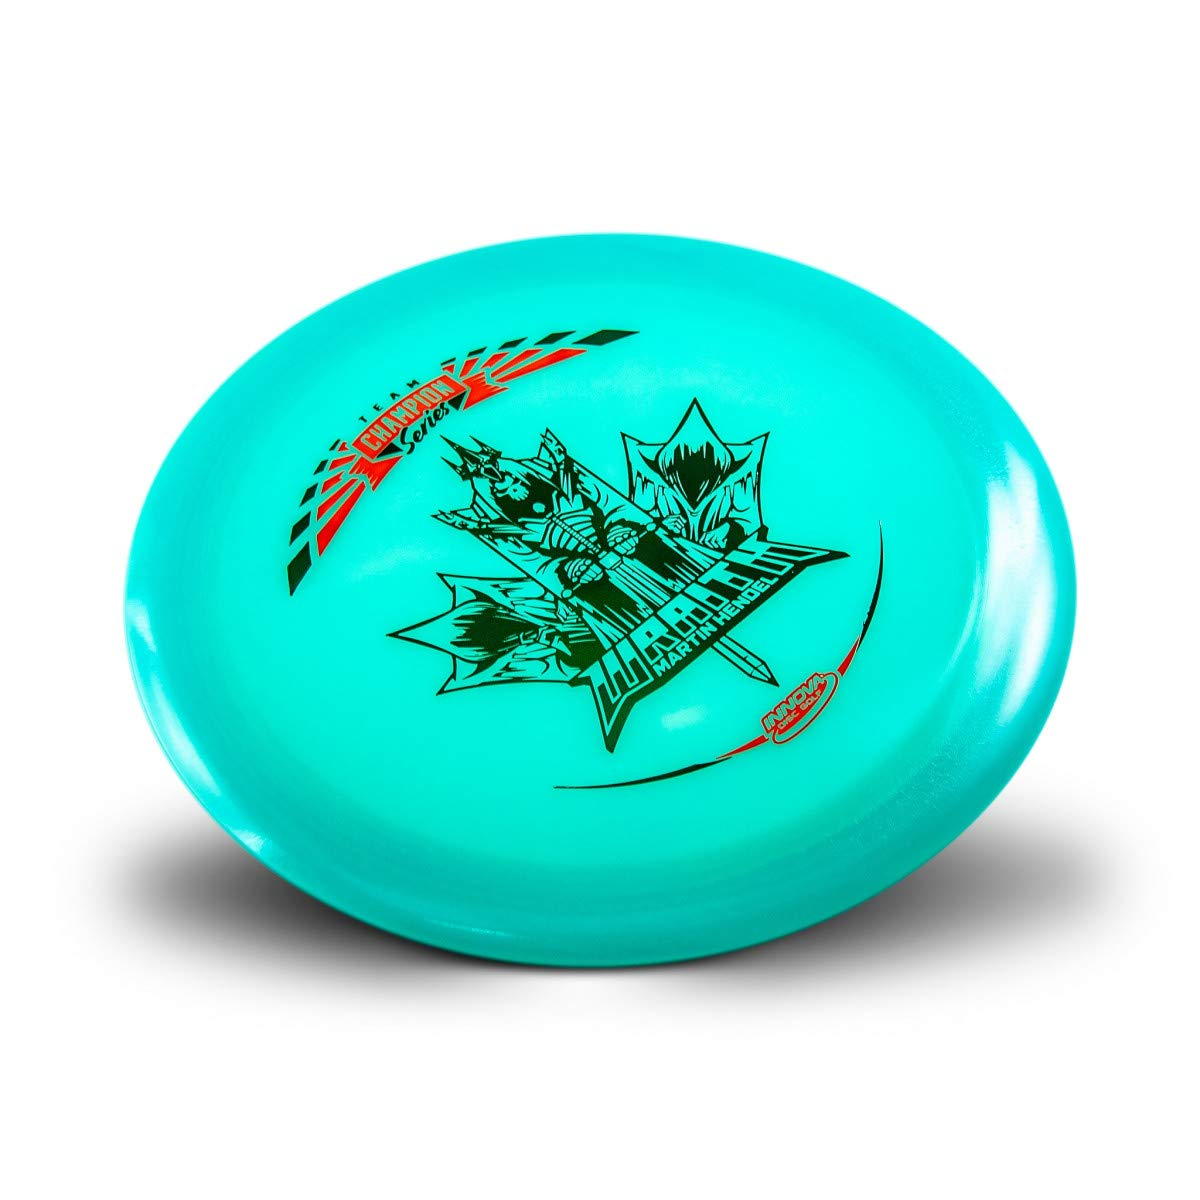 Innova Limited Edition 2019 Tour Series Martin Hendel Color Glow Champion Wraith Distance Driver Golf Disc [Colors May Vary] - 173-175g